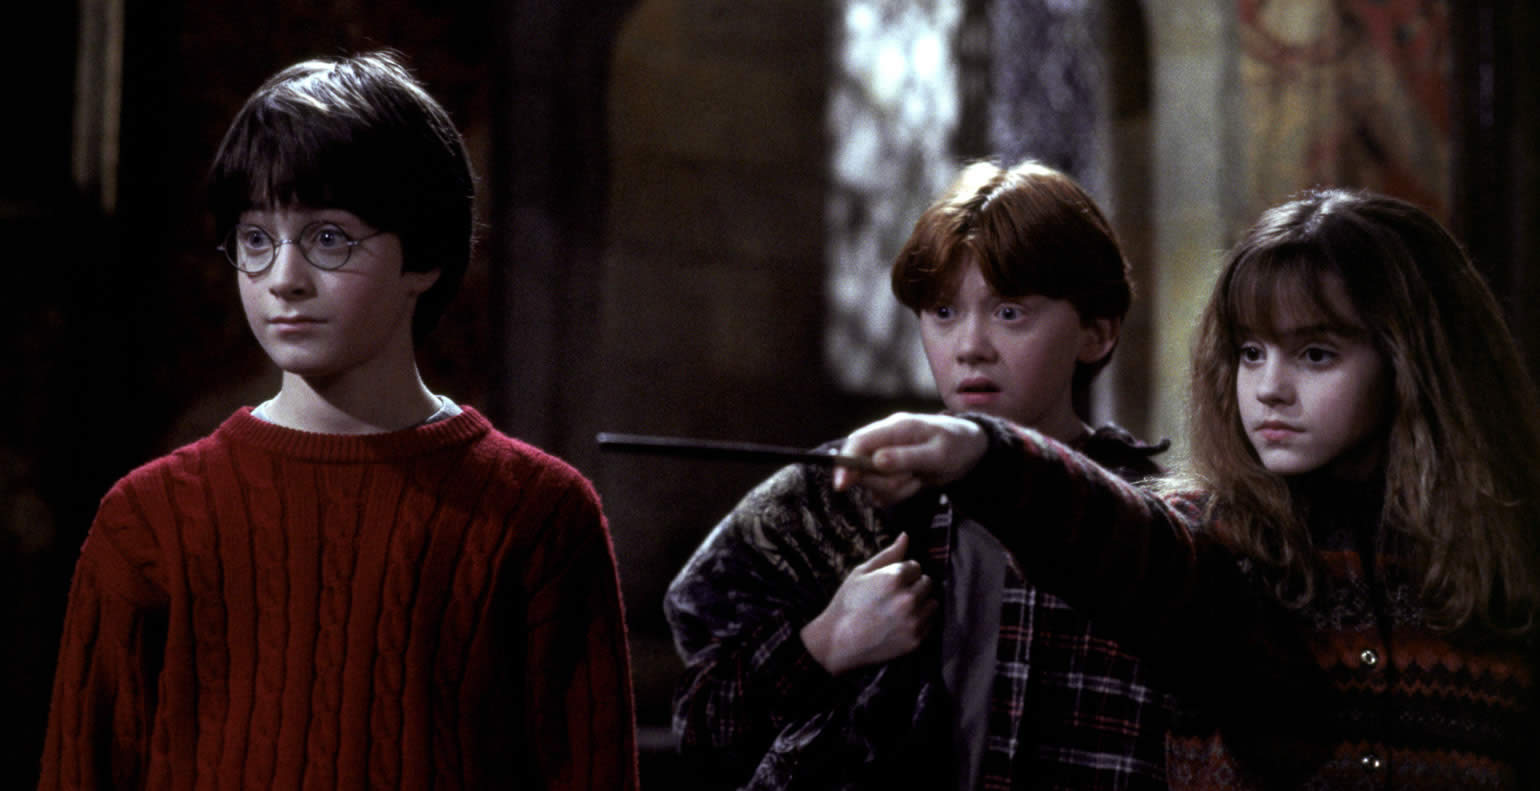 ... harry potter and the sorcerers stone heros journey essay abroad essays